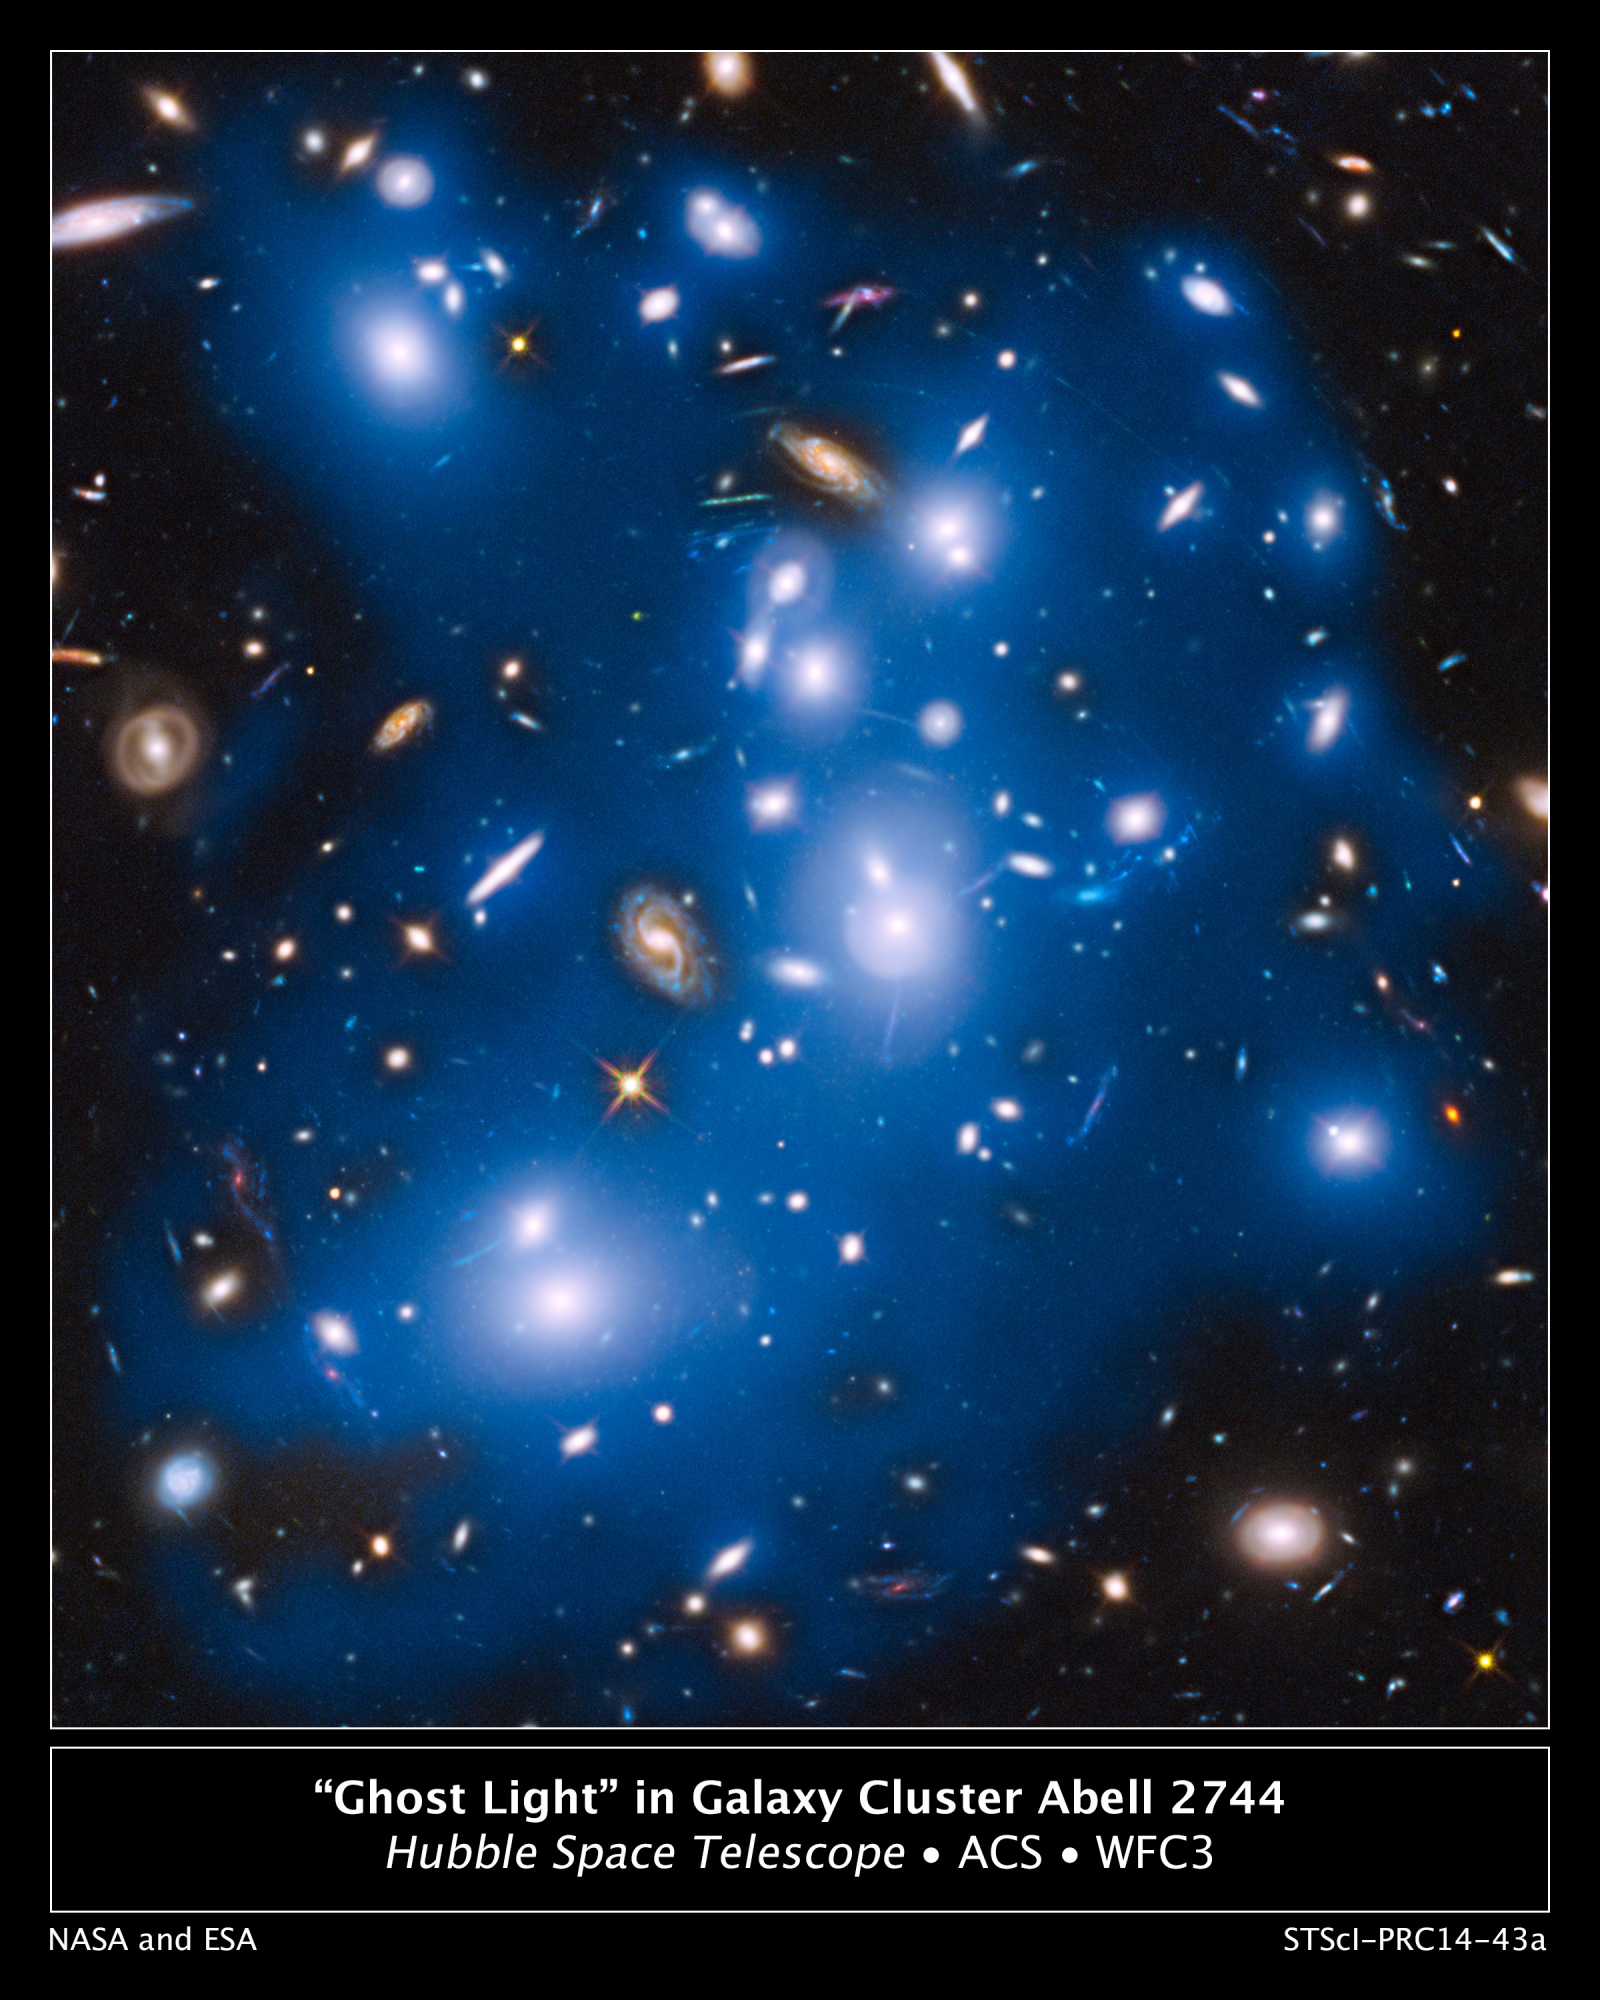 HUBBLE ABELL